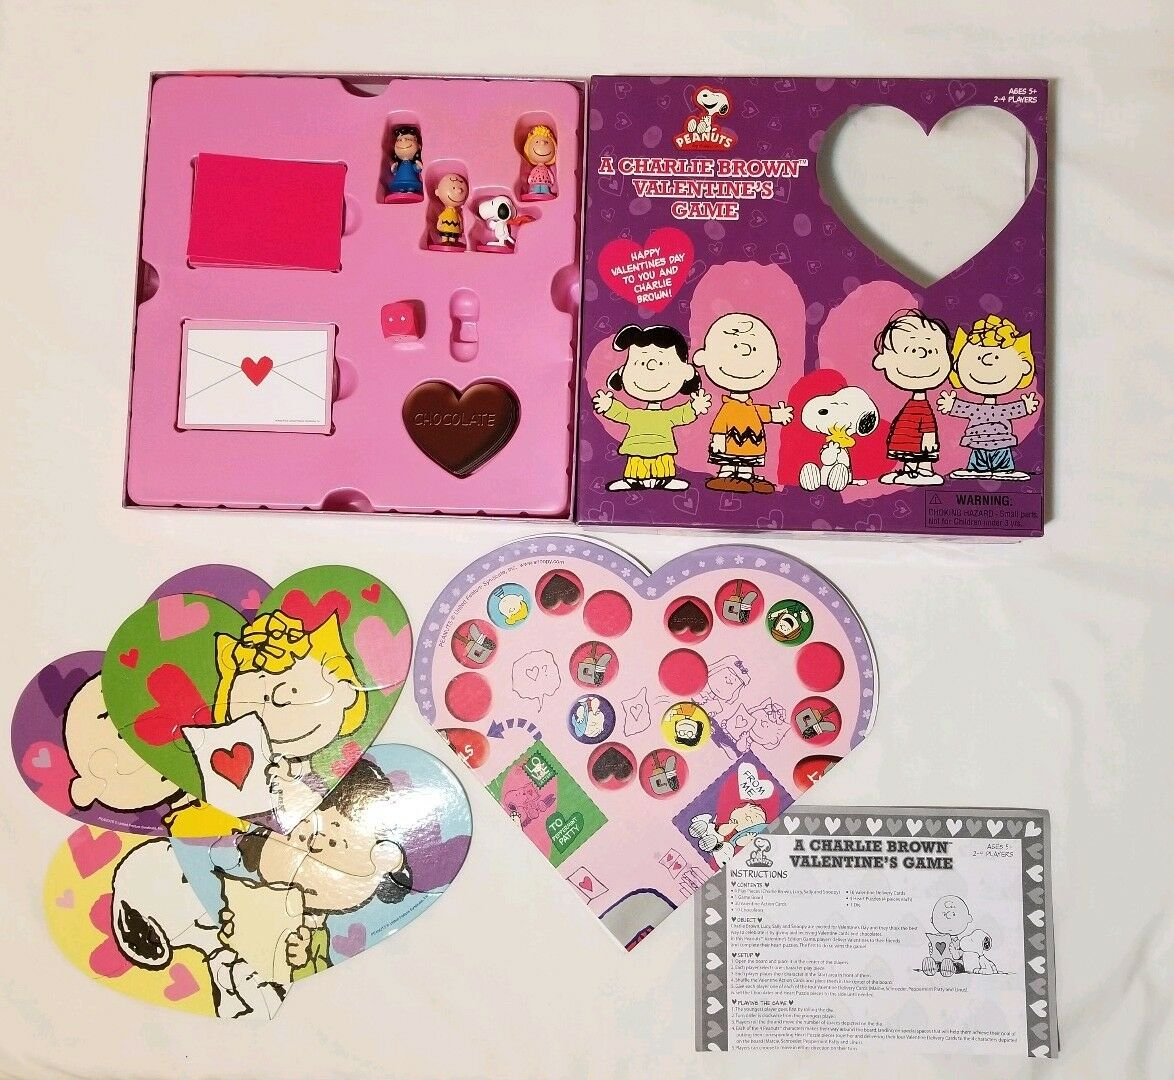 PEANUTS SNOOPY  A CHARLIE Marrone VALENTINE'S FAMILY BOARD GAME Rare 2007